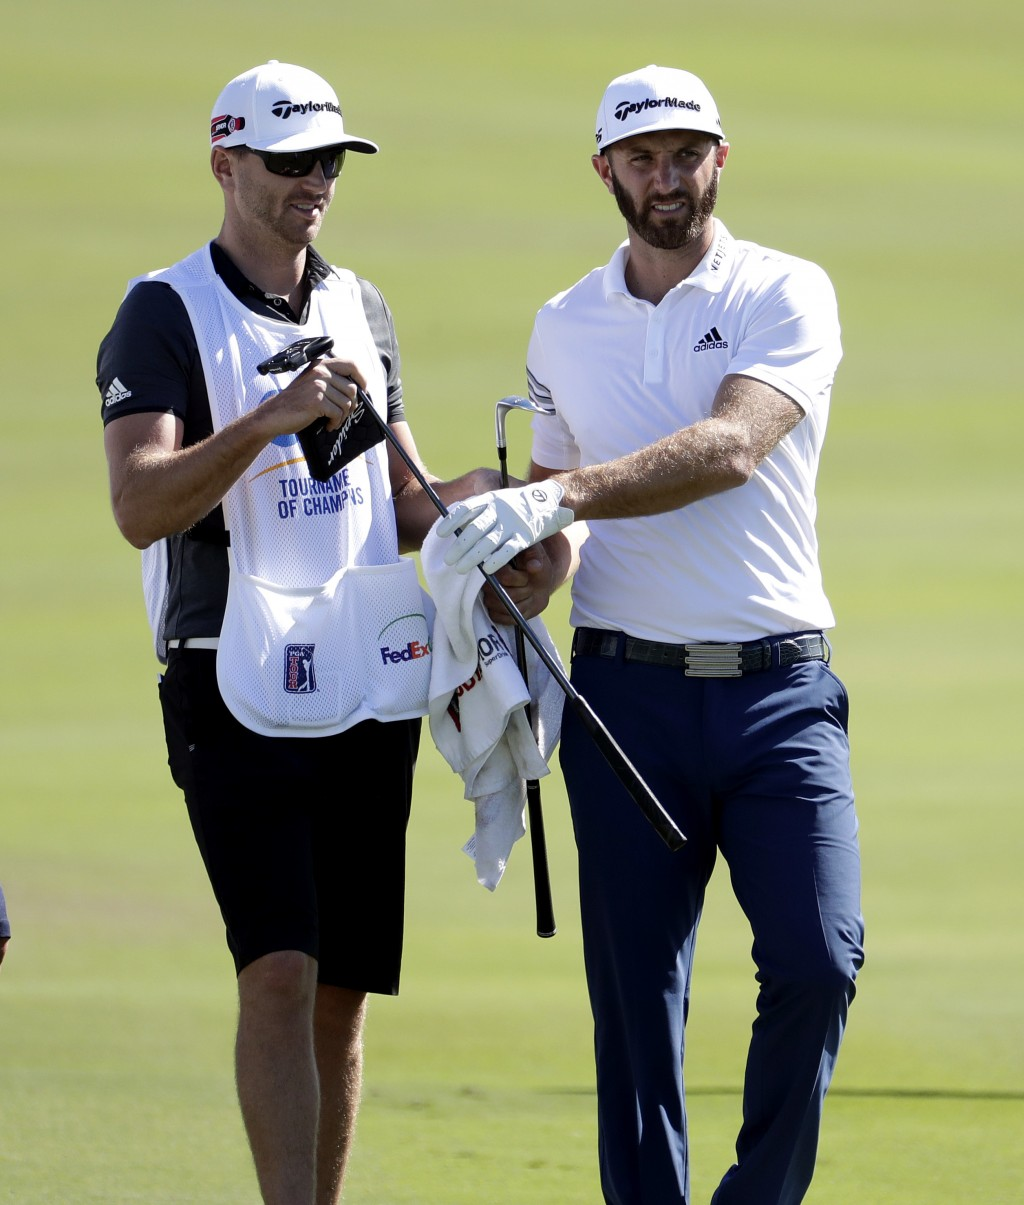 FILE - In this Jan. 4, 2017, file photo, Dustin Johnson, right, exchanges clubs with his caddy, brother Austin Johnson, on the 18th green during the p...